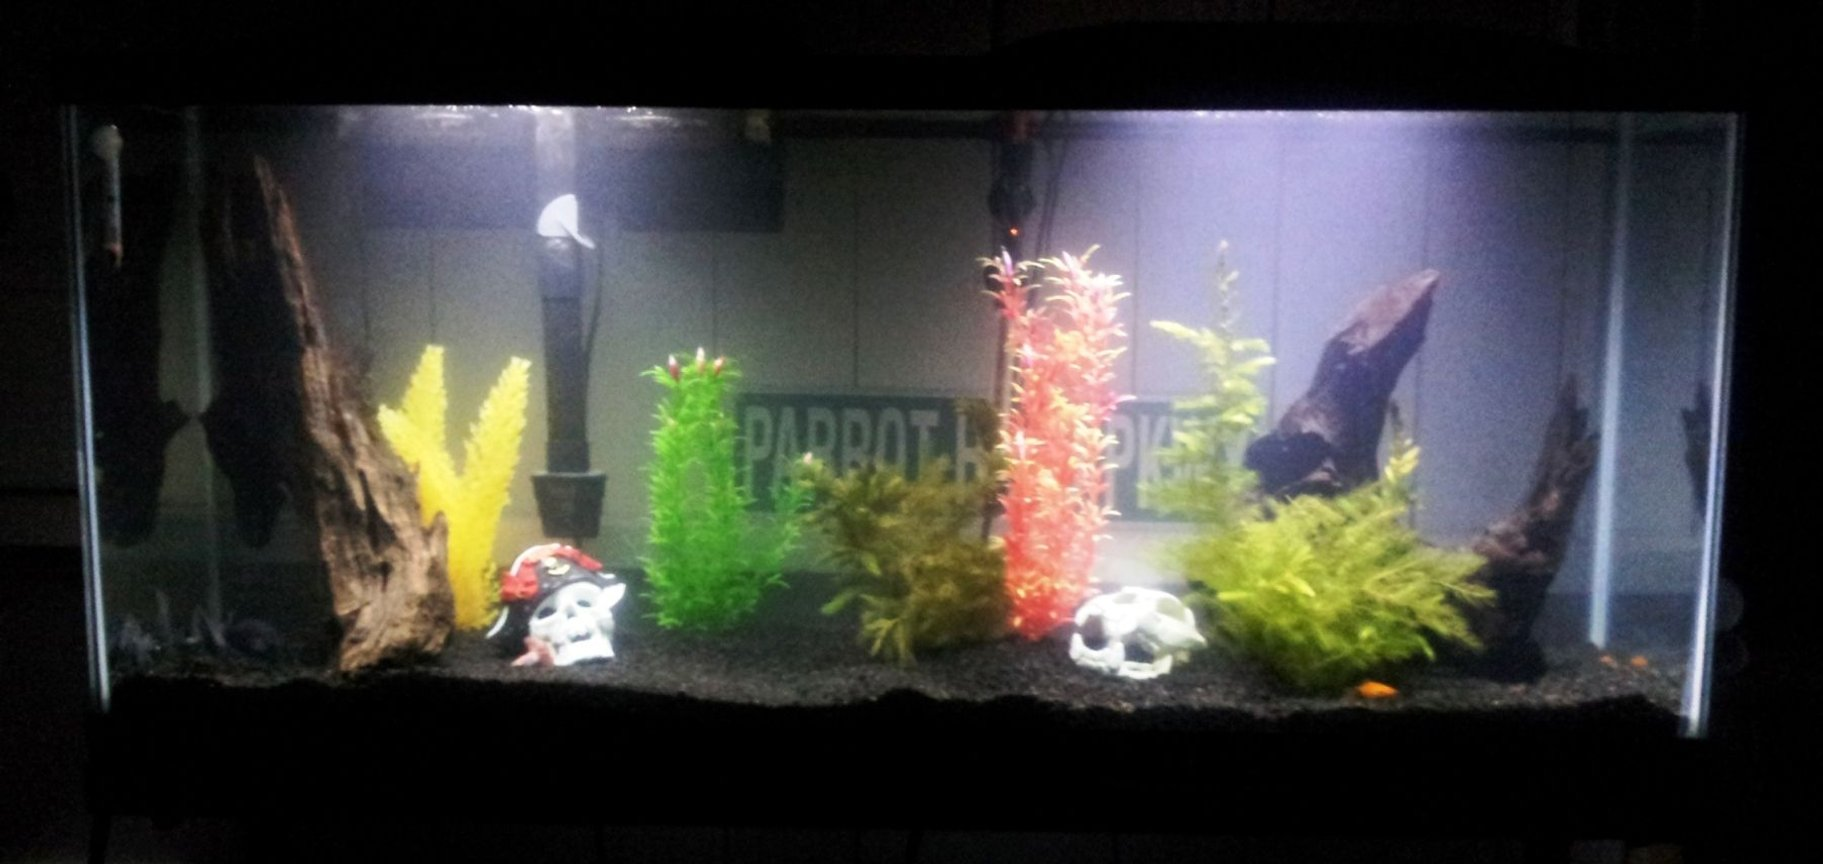 55 gallons freshwater fish tank (mostly fish and non-living decorations) - 2 Blue Diamond Discus, 2 Baby Blue Panda Discus, 2 Gold Twin-barred Platy, 1 Red Wag Platy, 1 Algae Eater